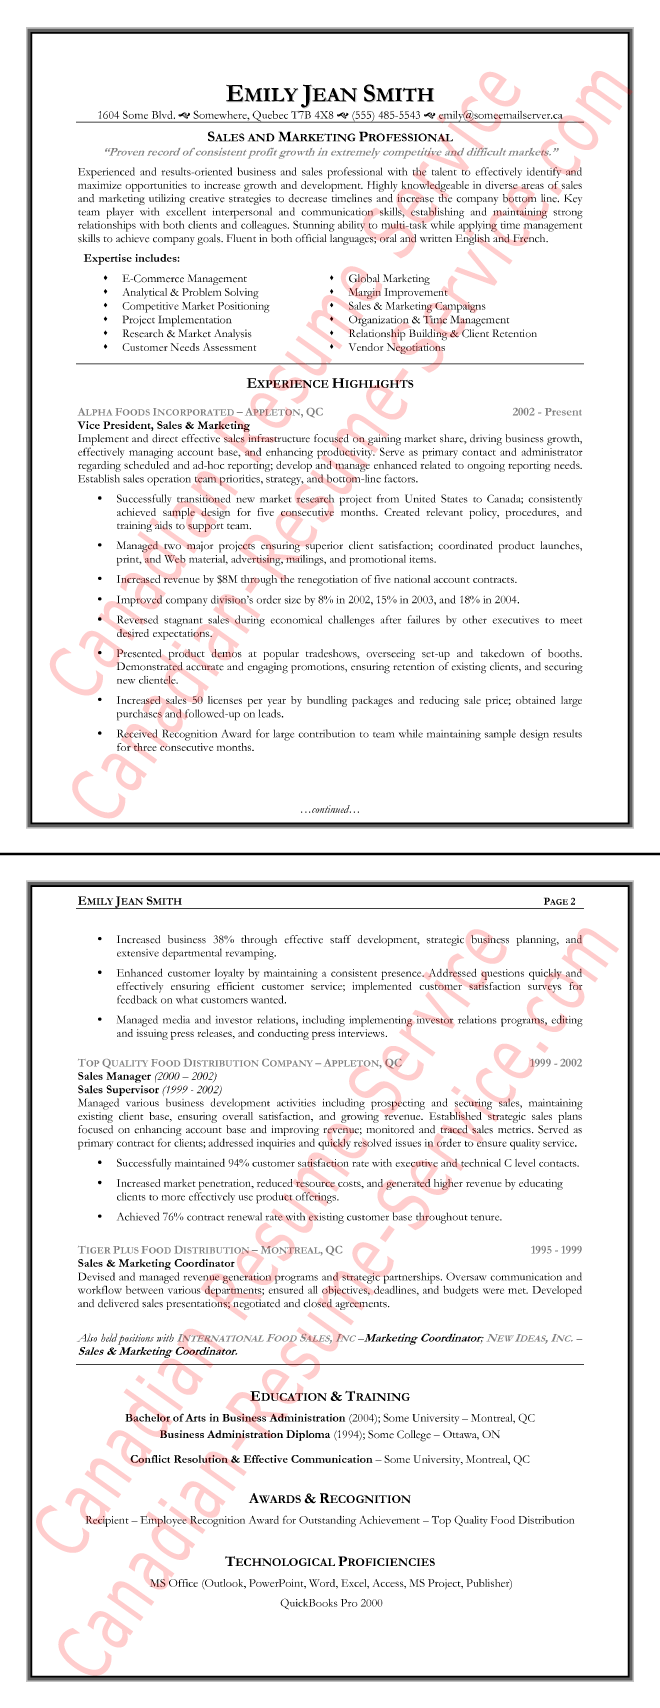 sales executive resume sample loaded with accomplishments - Resume Format For Sales Executive